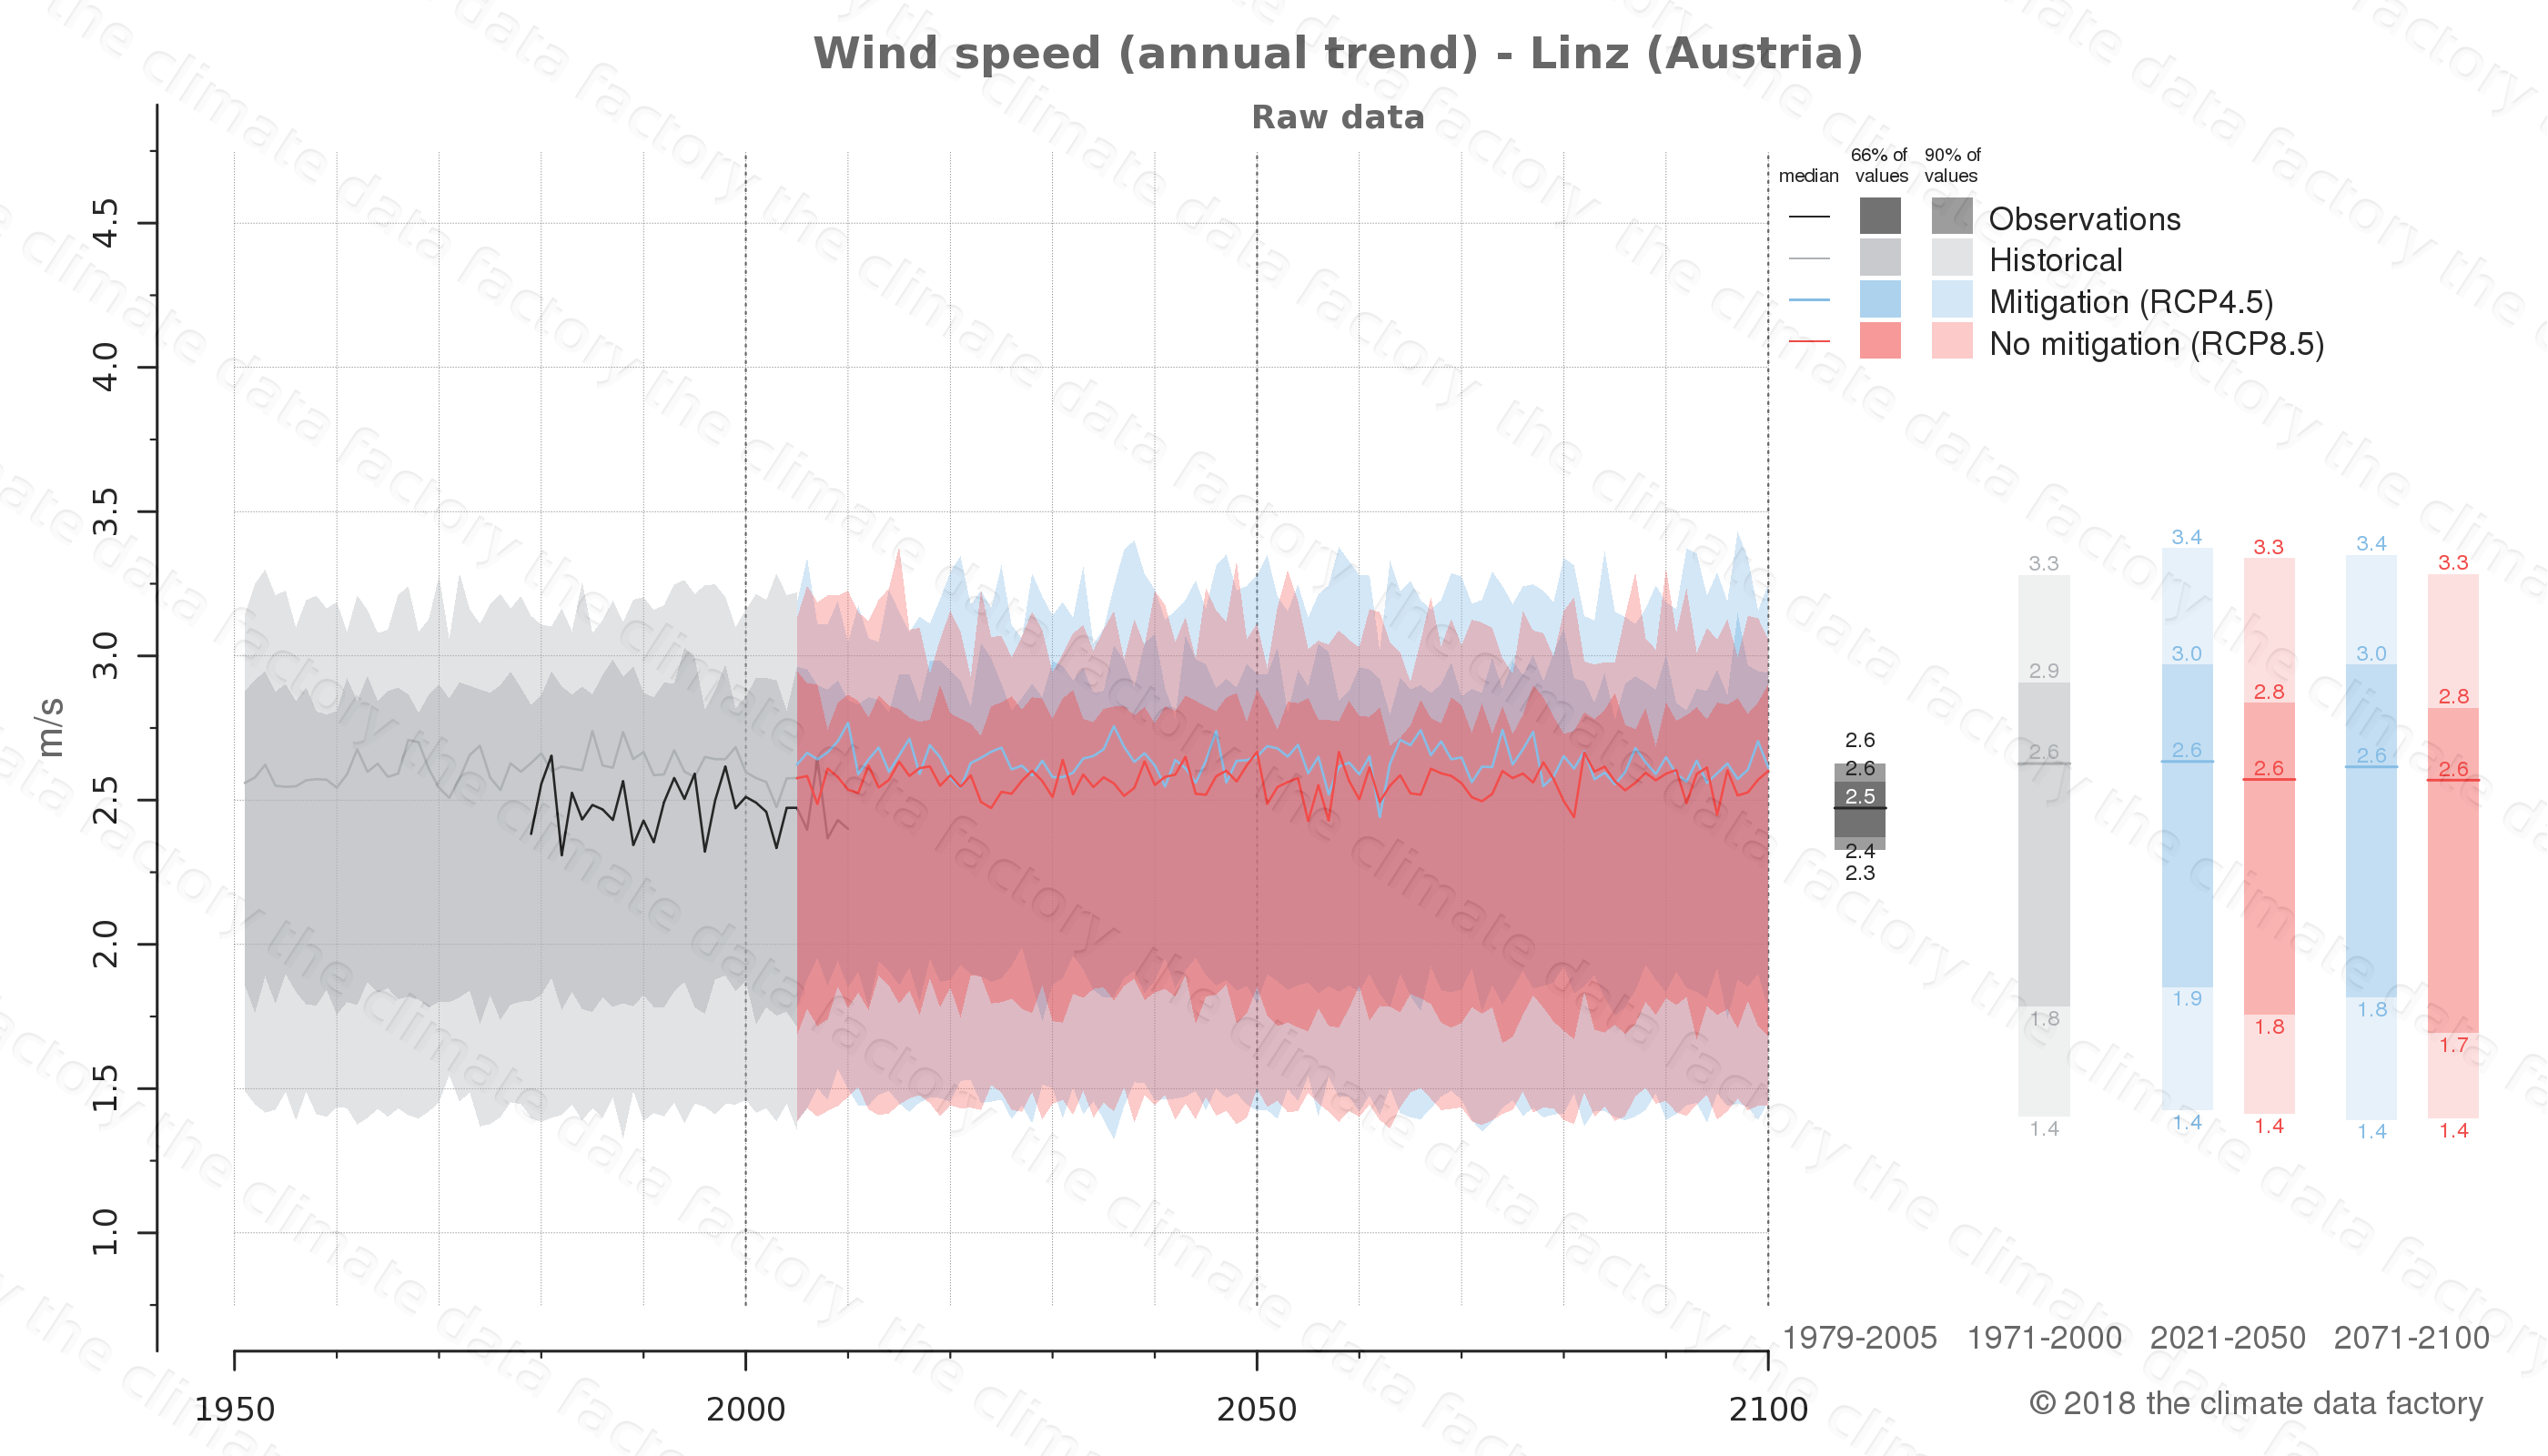 climate change data policy adaptation climate graph city data wind-speed linz austria